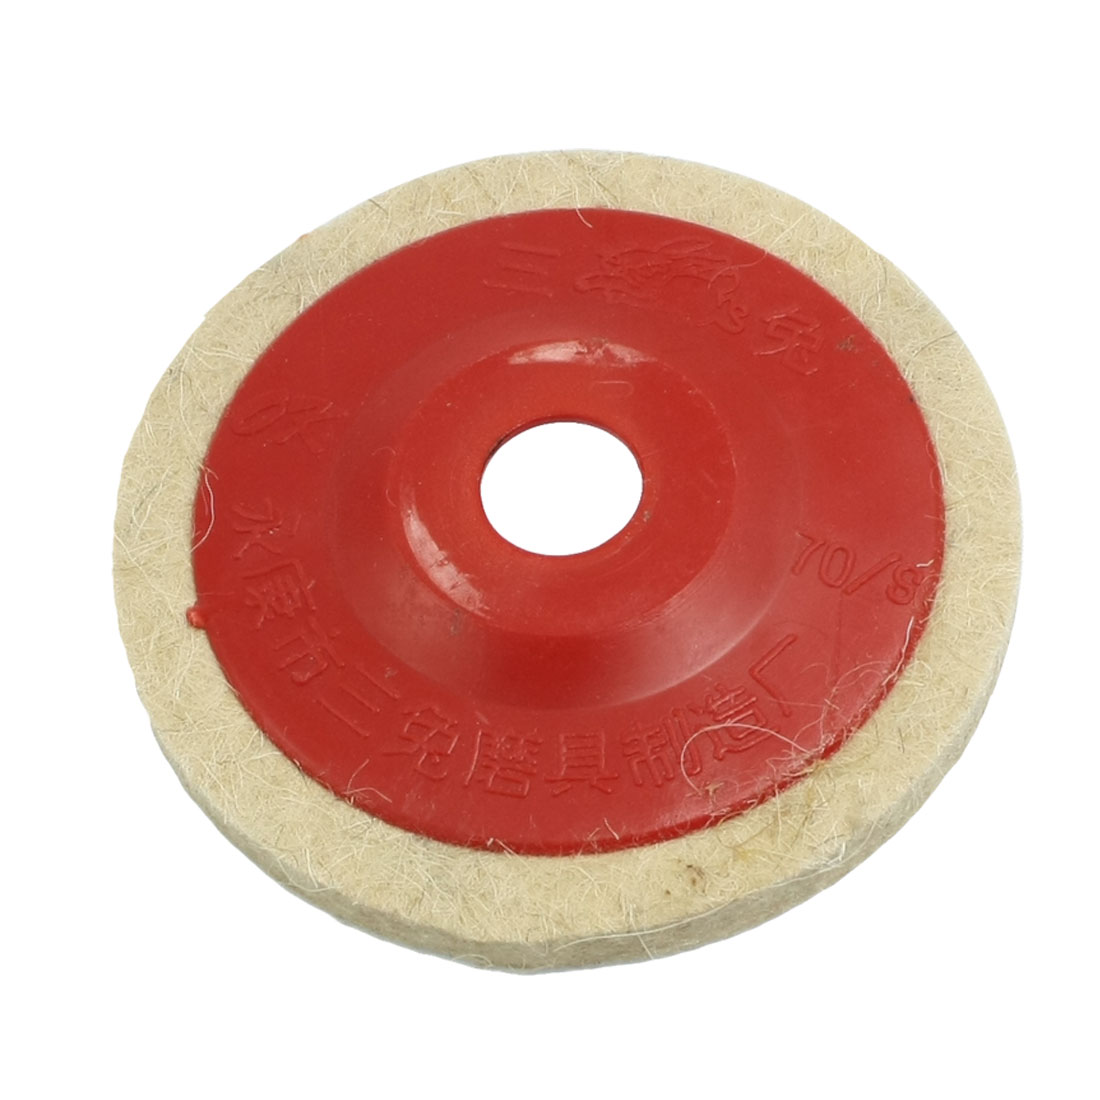 "3.7"" Outer Dia Wool Felt Polishing Wheel Sanding Disc for Metal"